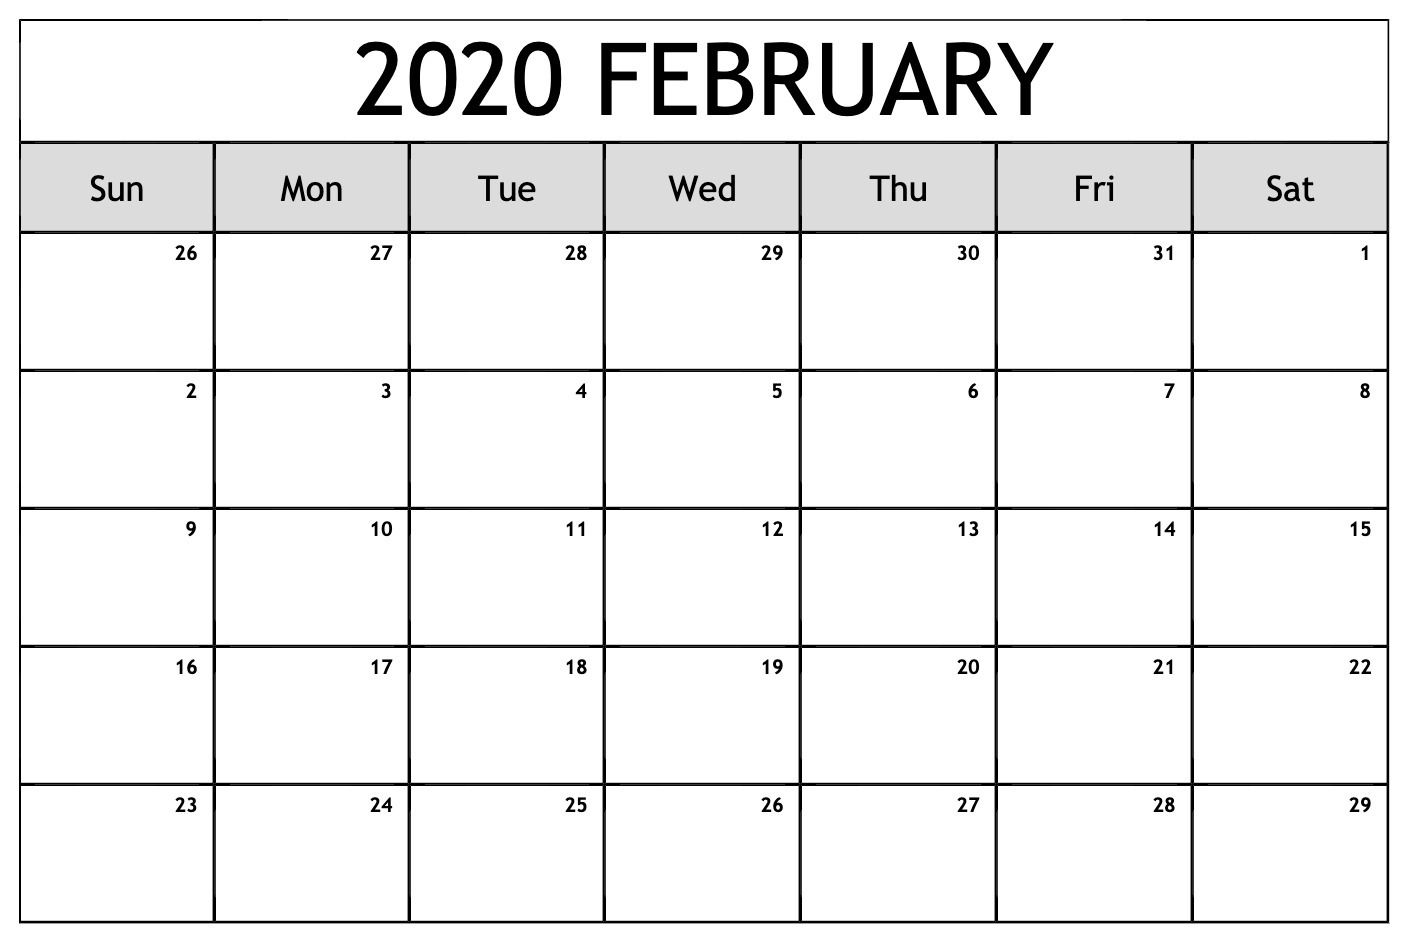 February 2020 Blank Calendar Printable Templates With Notes With